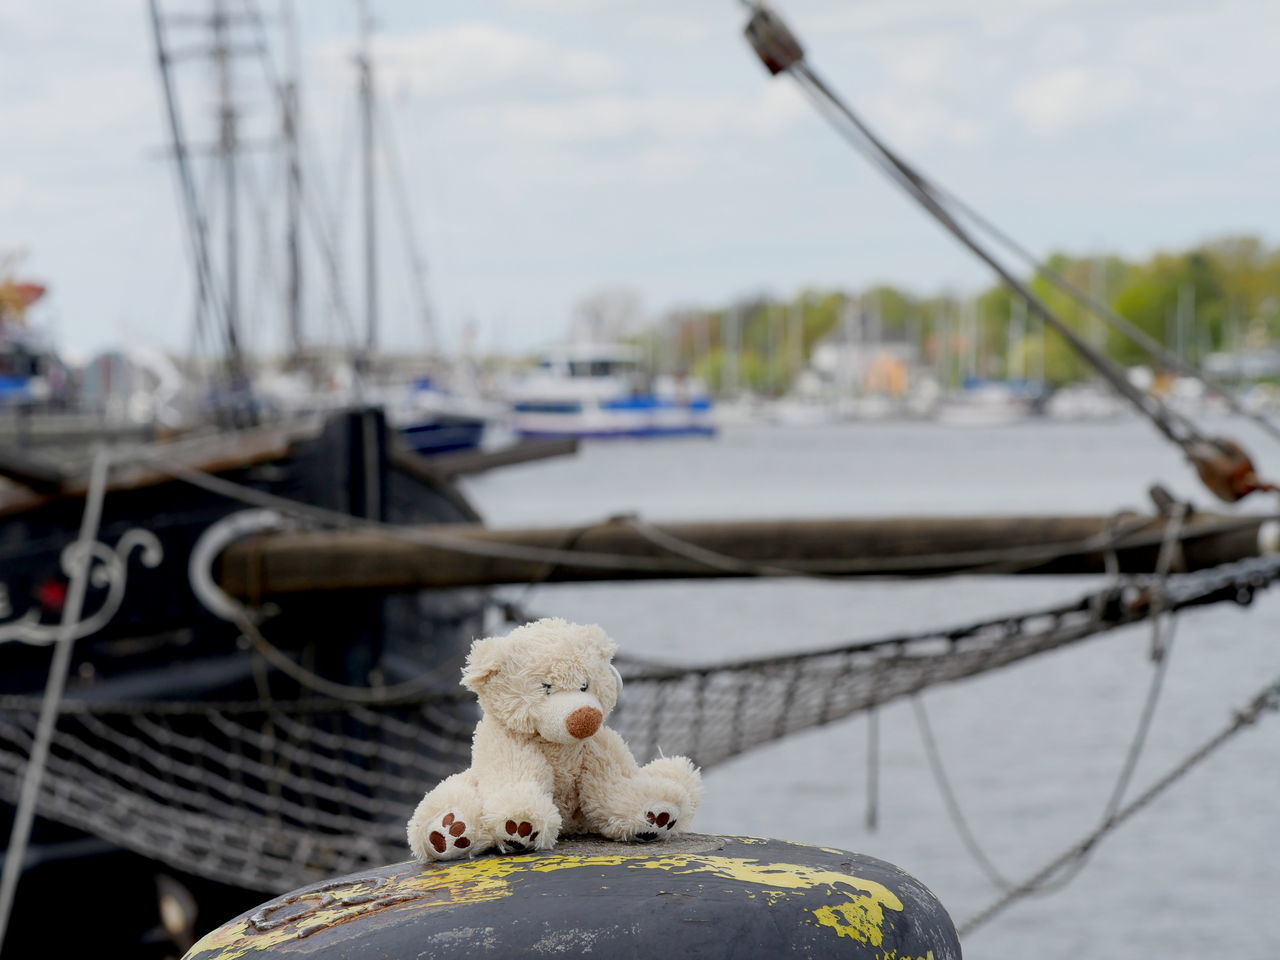 Focus On Foreground Harbor No People Outdoors Sailboat Sailing Ship Stuffed Toy Taking Photos Teddy Bear Transportation Live For The Story The Street Photographer - 2017 EyeEm Awards EyeEm Best Shots Exceptional Photographs Blurred Background Capture The Moment